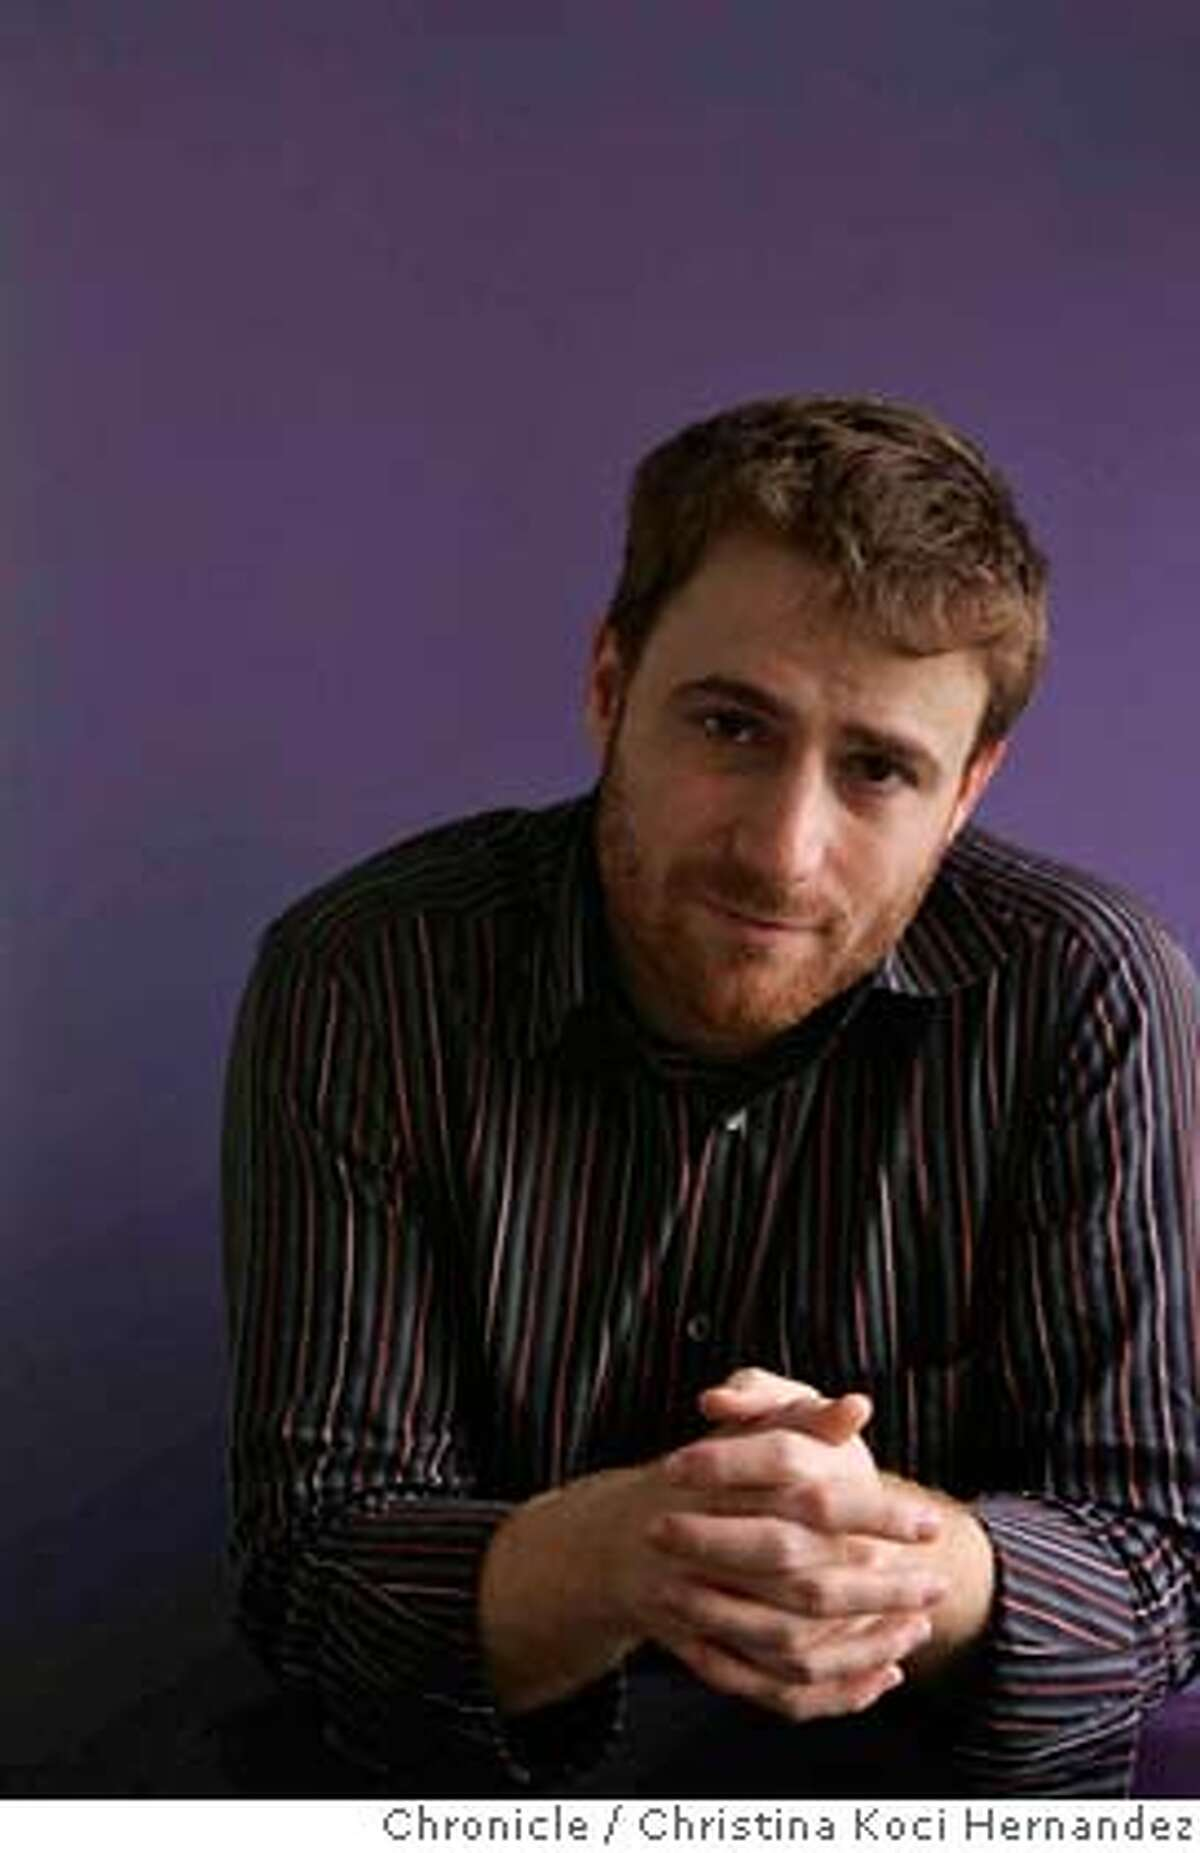 Stewart Butterfield is one of the founders of Flickr, the photo sharing Web site. Story is about how Yahoo is under pressure to improve its business and reorganize, and is looking to the startups it has acquired over the past 18 months to impart some wisdom about the latest online innovations. Stewart is one of the key guys in that strategy.(CHRSTINA KOCI HERNANDEZ/CHRONICLE) CHRONICLE Photos by CHRISTINA KOCI HERNANDEZ